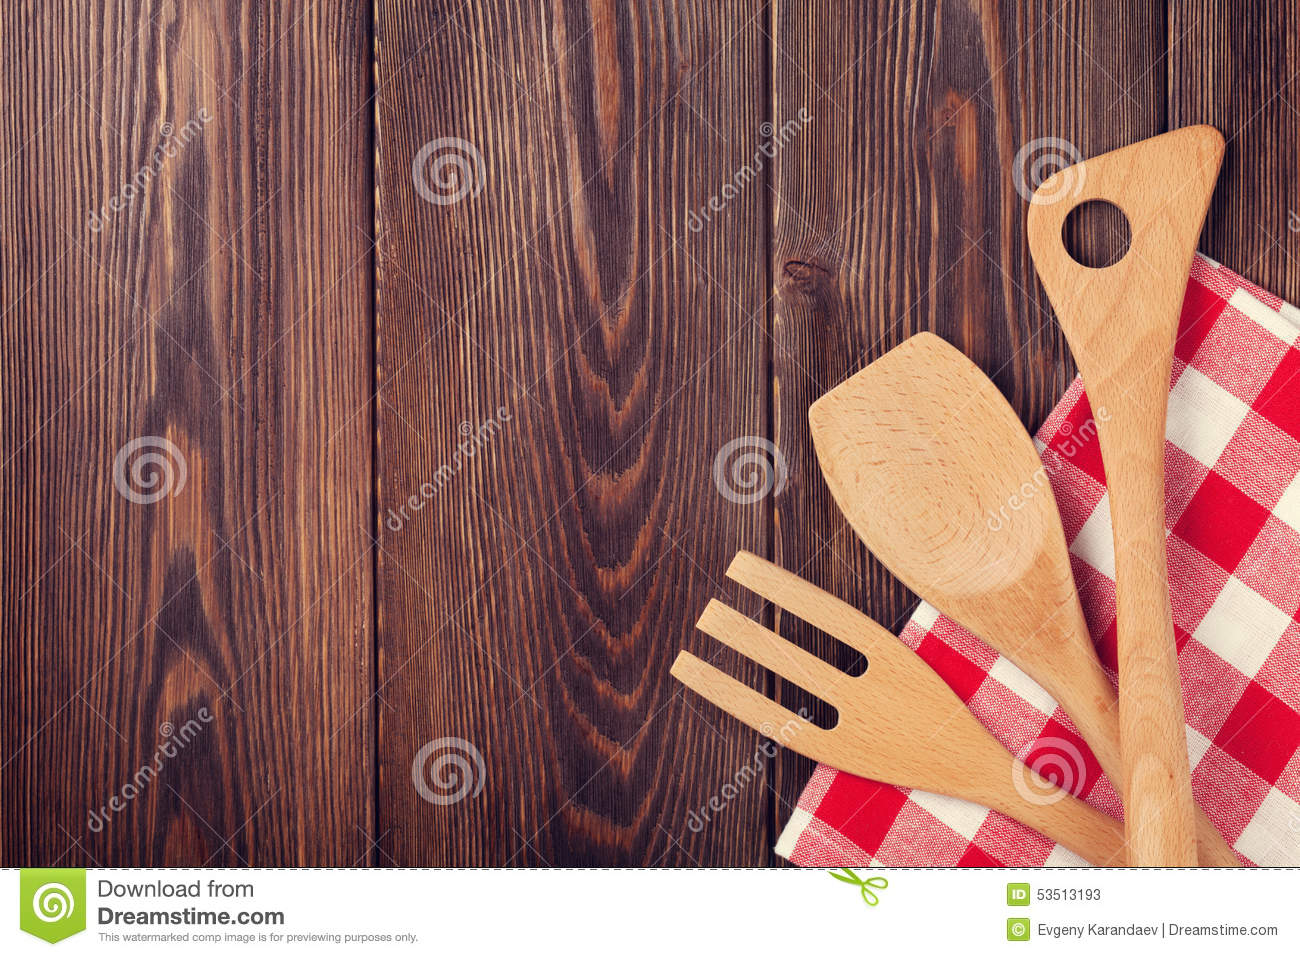 Kitchen cooking utensils over wooden table stock image for Table utensils